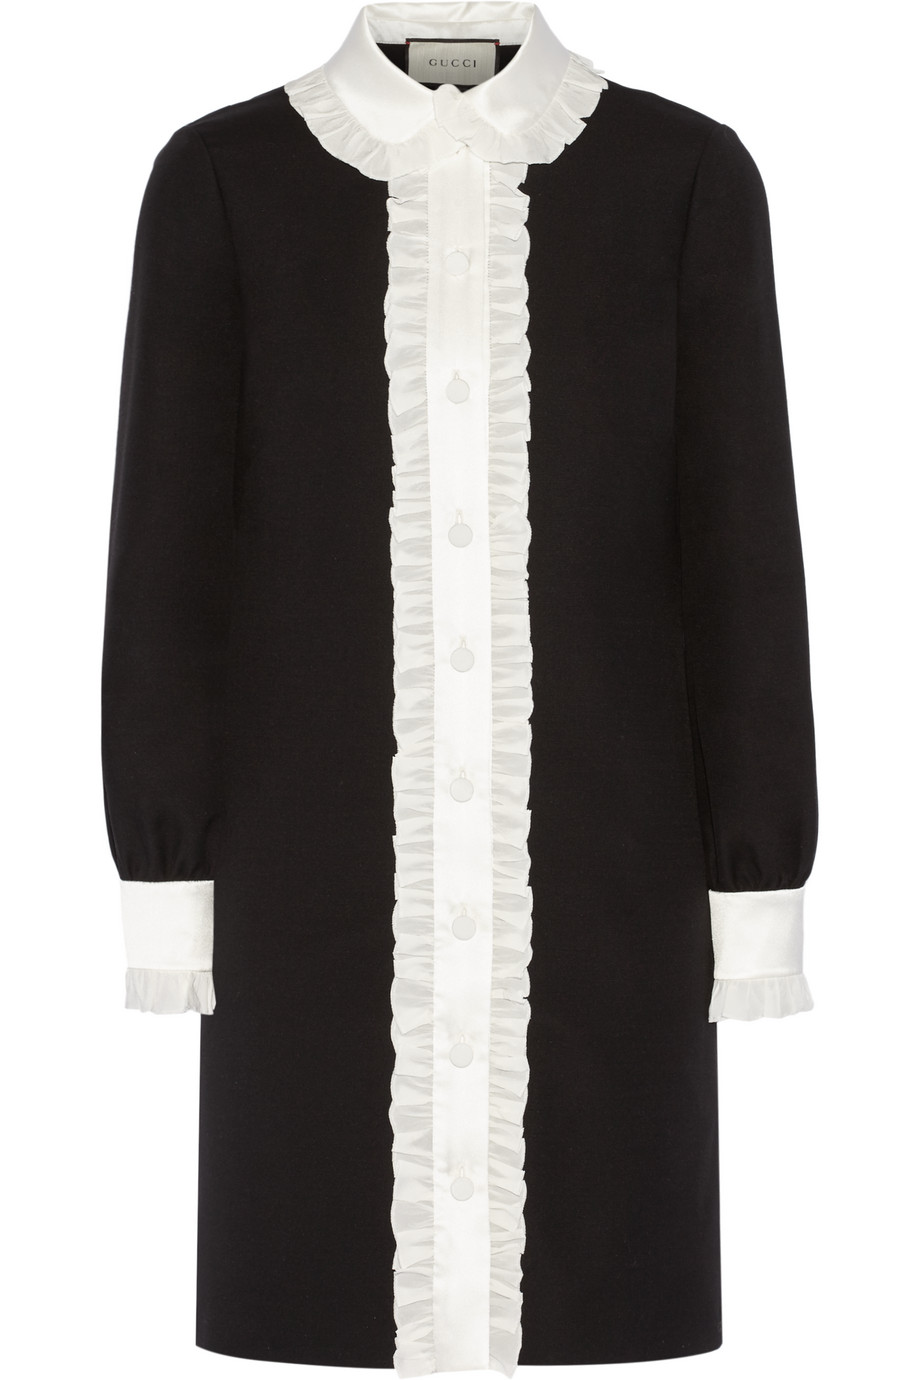 Gucci Ruffle-Trimmed Wool and Silk-Blend Crepe Shirt Dress, Black, Women's, Size: 40